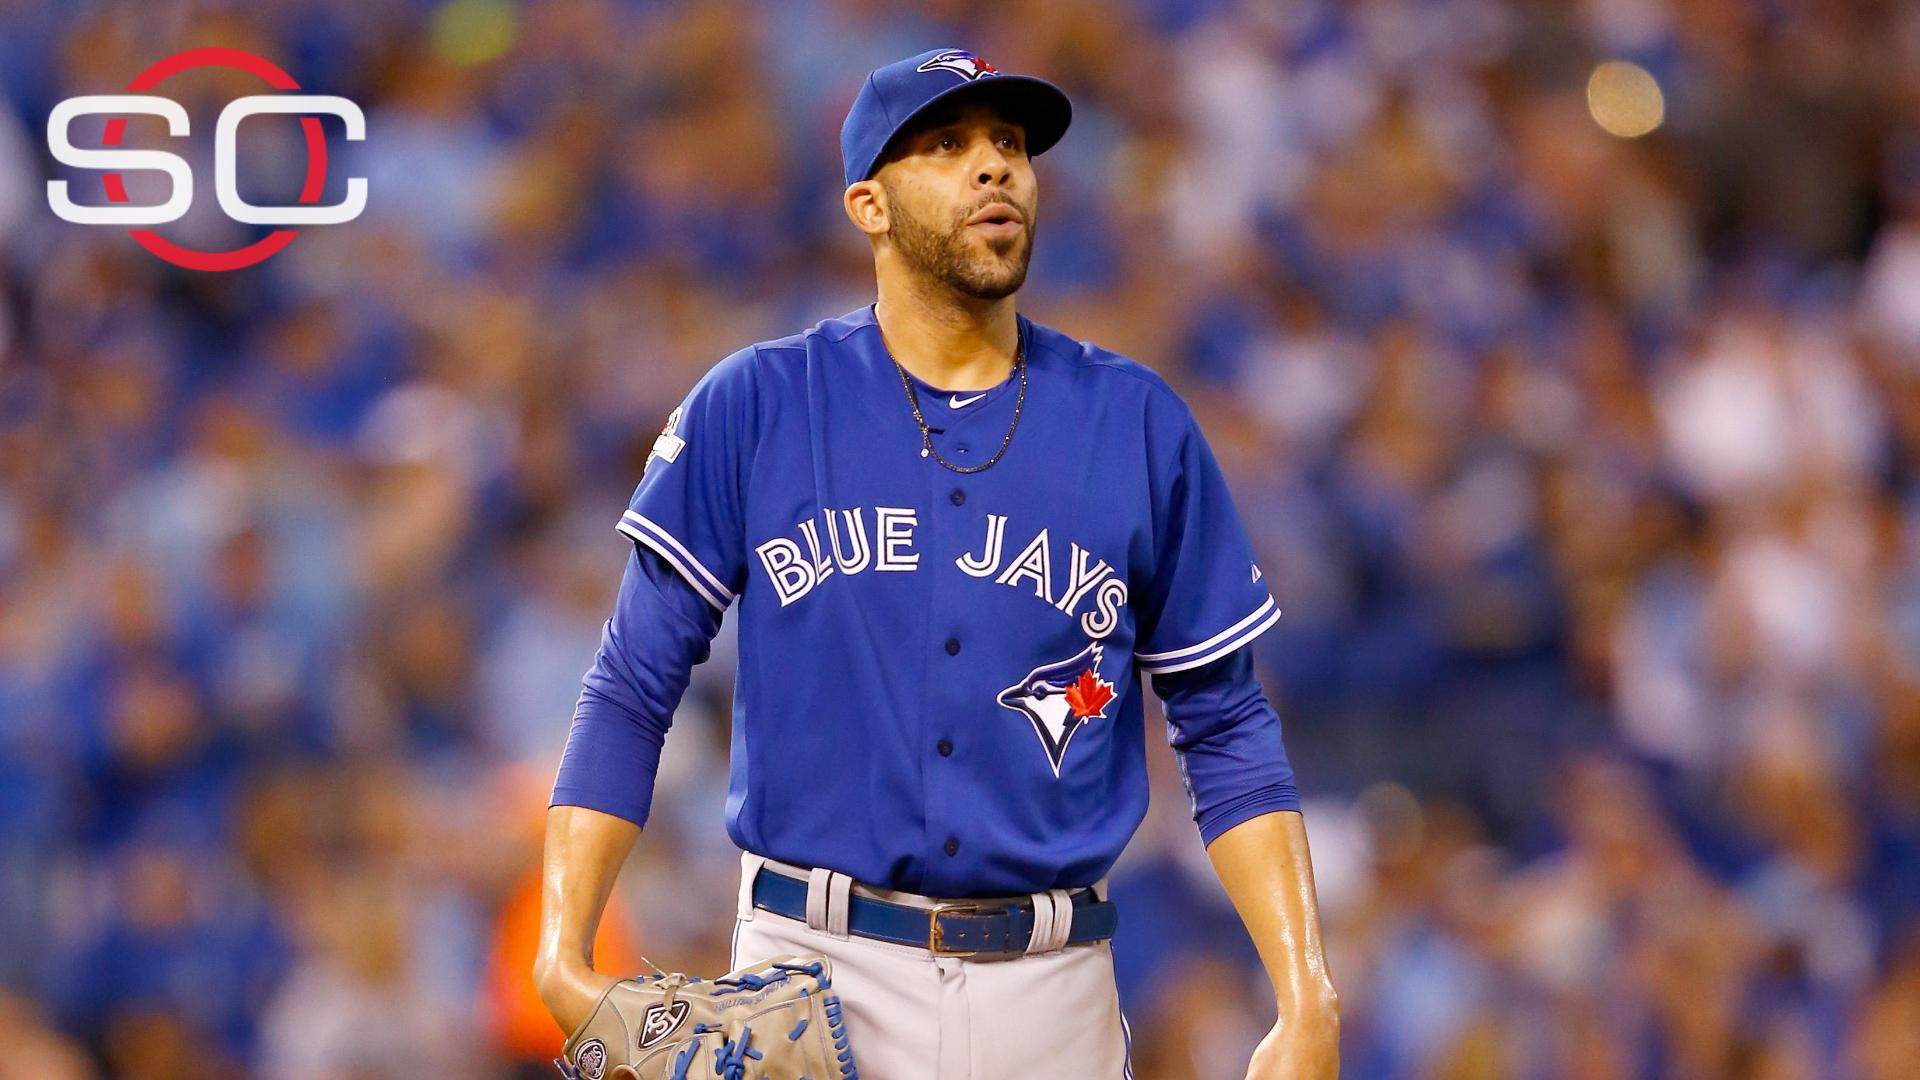 Kurkjian: Boston has needed someone of Price's caliber